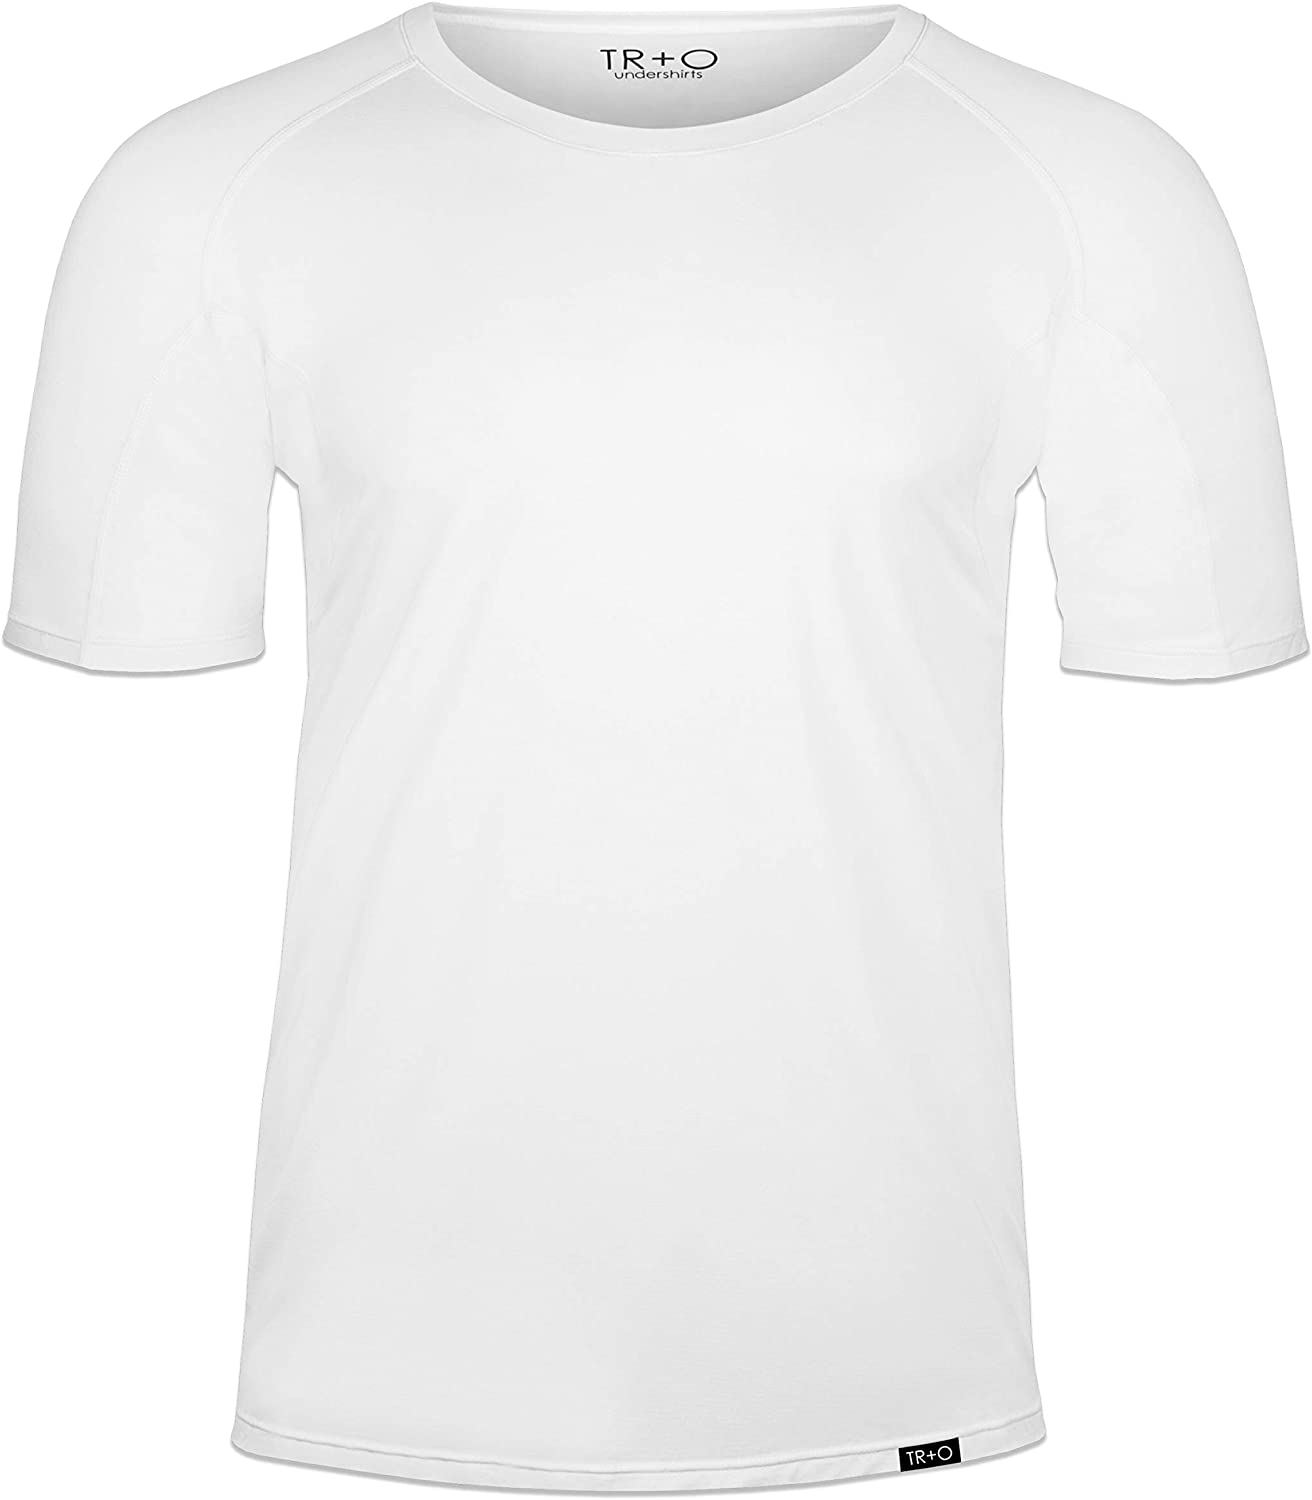 TR+O New mail order Undershirts mens Max 73% OFF Modern Fitted